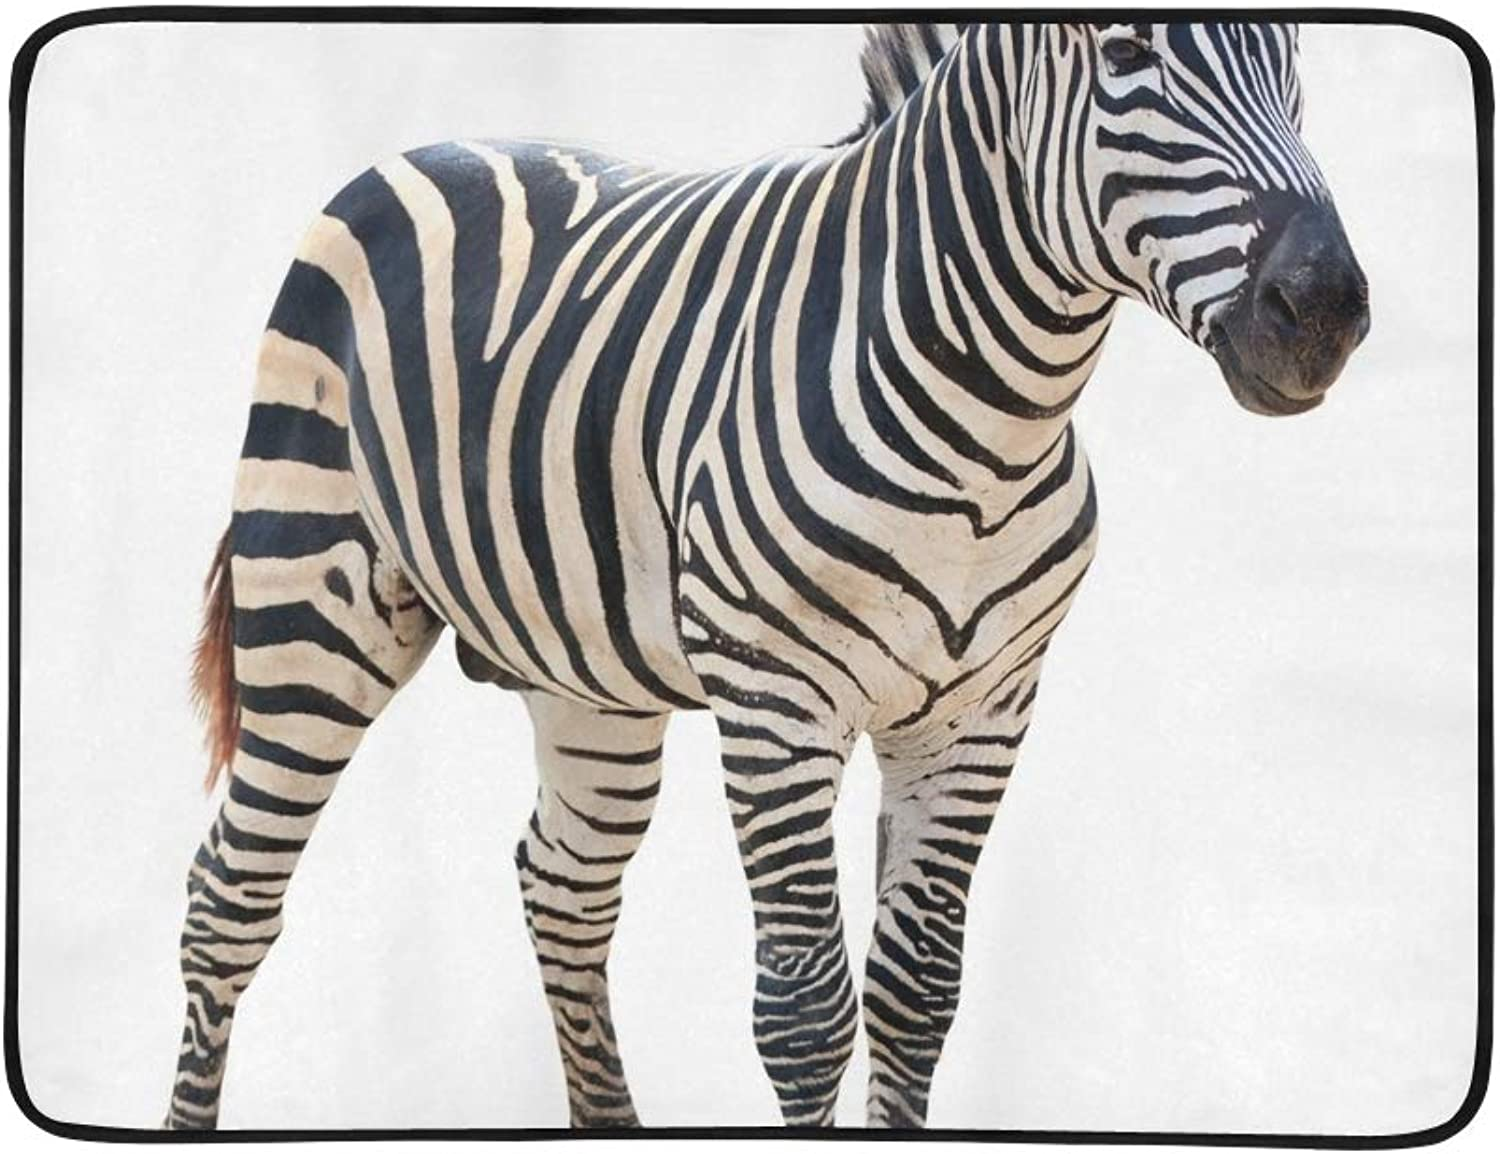 Plain Burchell Zebra On White Portable and Foldable Blanket Mat 60x78 Inch Handy Mat for Camping Picnic Beach Indoor Outdoor Travel